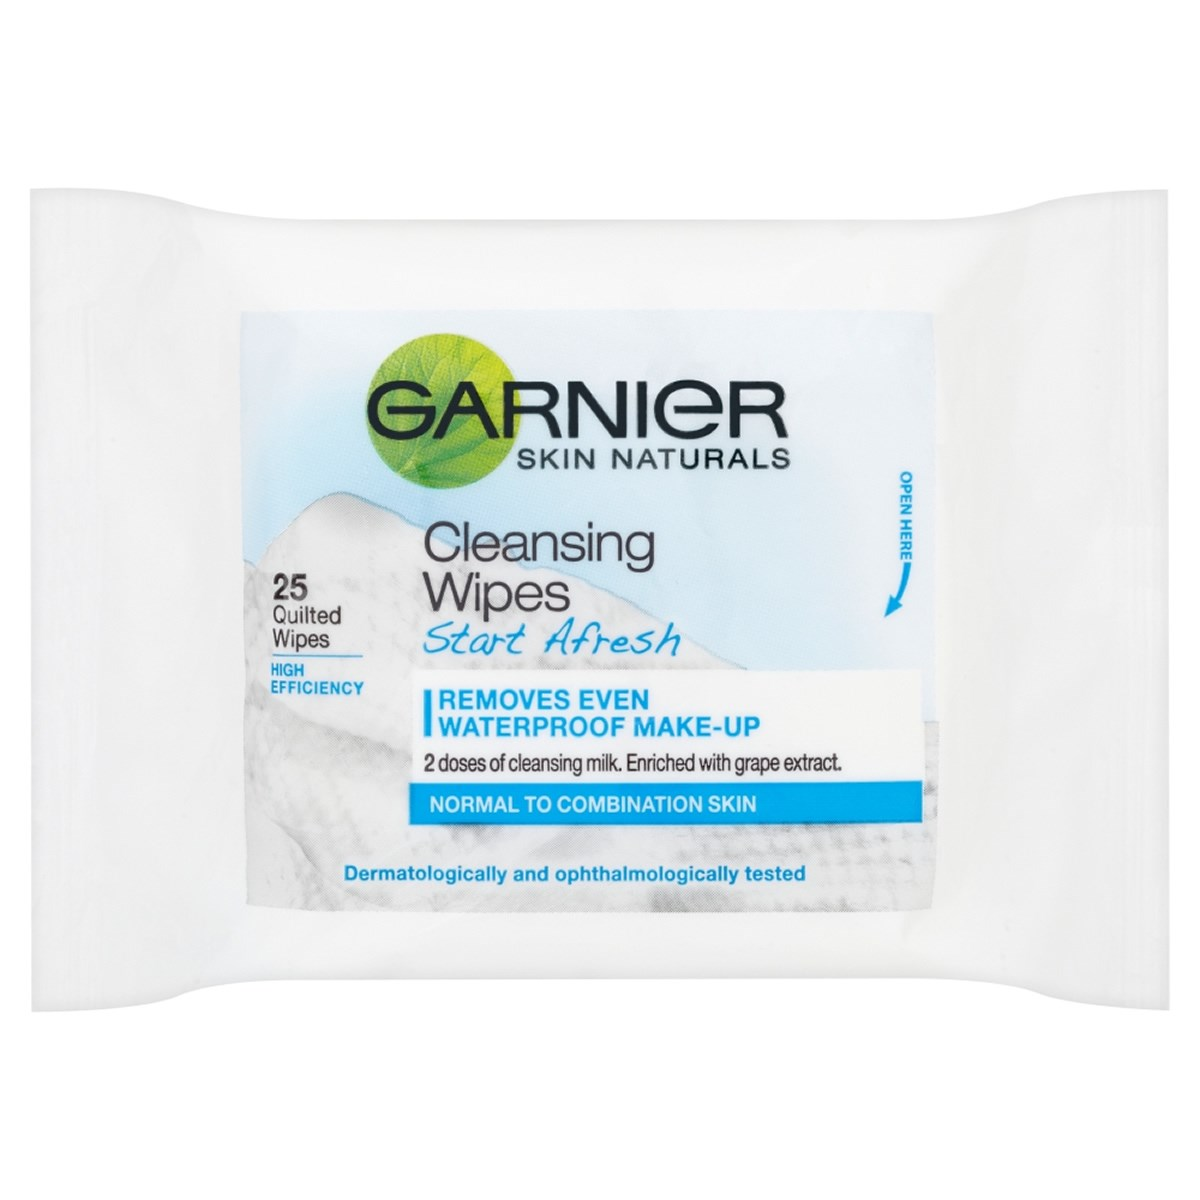 Garnier Start Afresh Fresh Cleansing Wipes